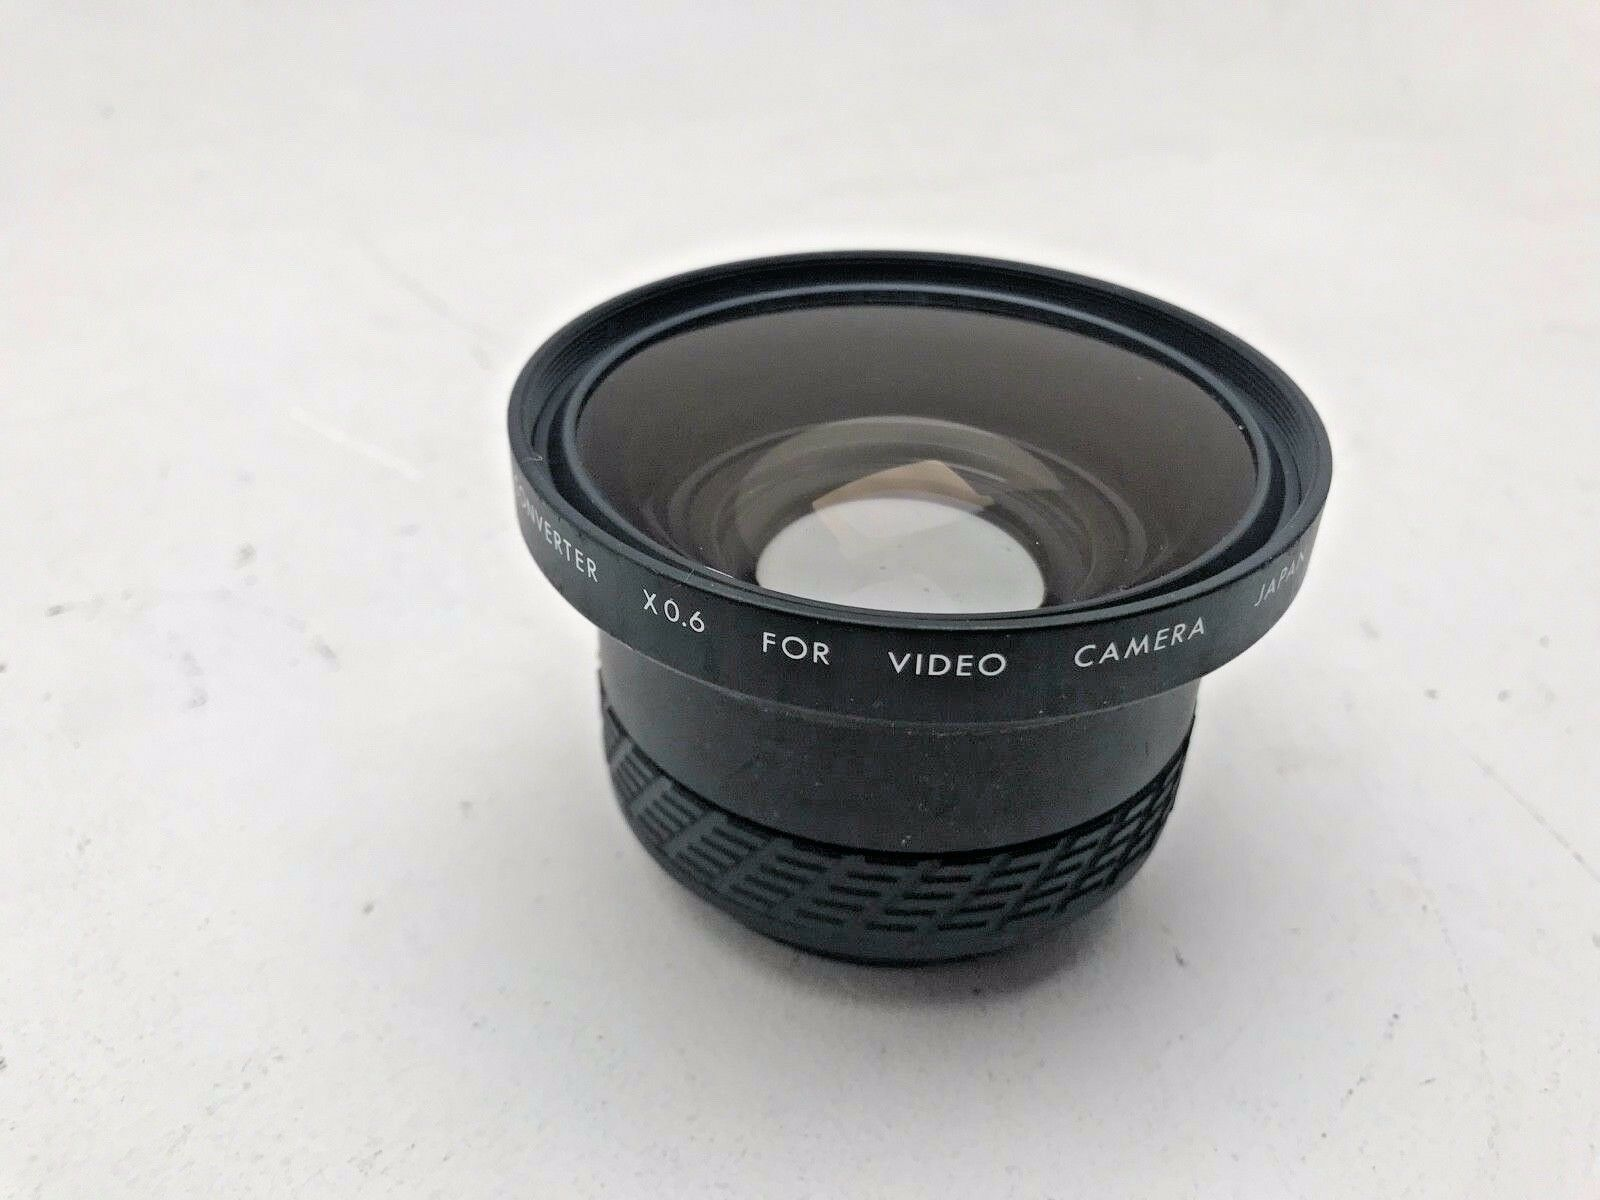 Sigma 0 6x video lens converter to reduce lens focal length by 0 6x